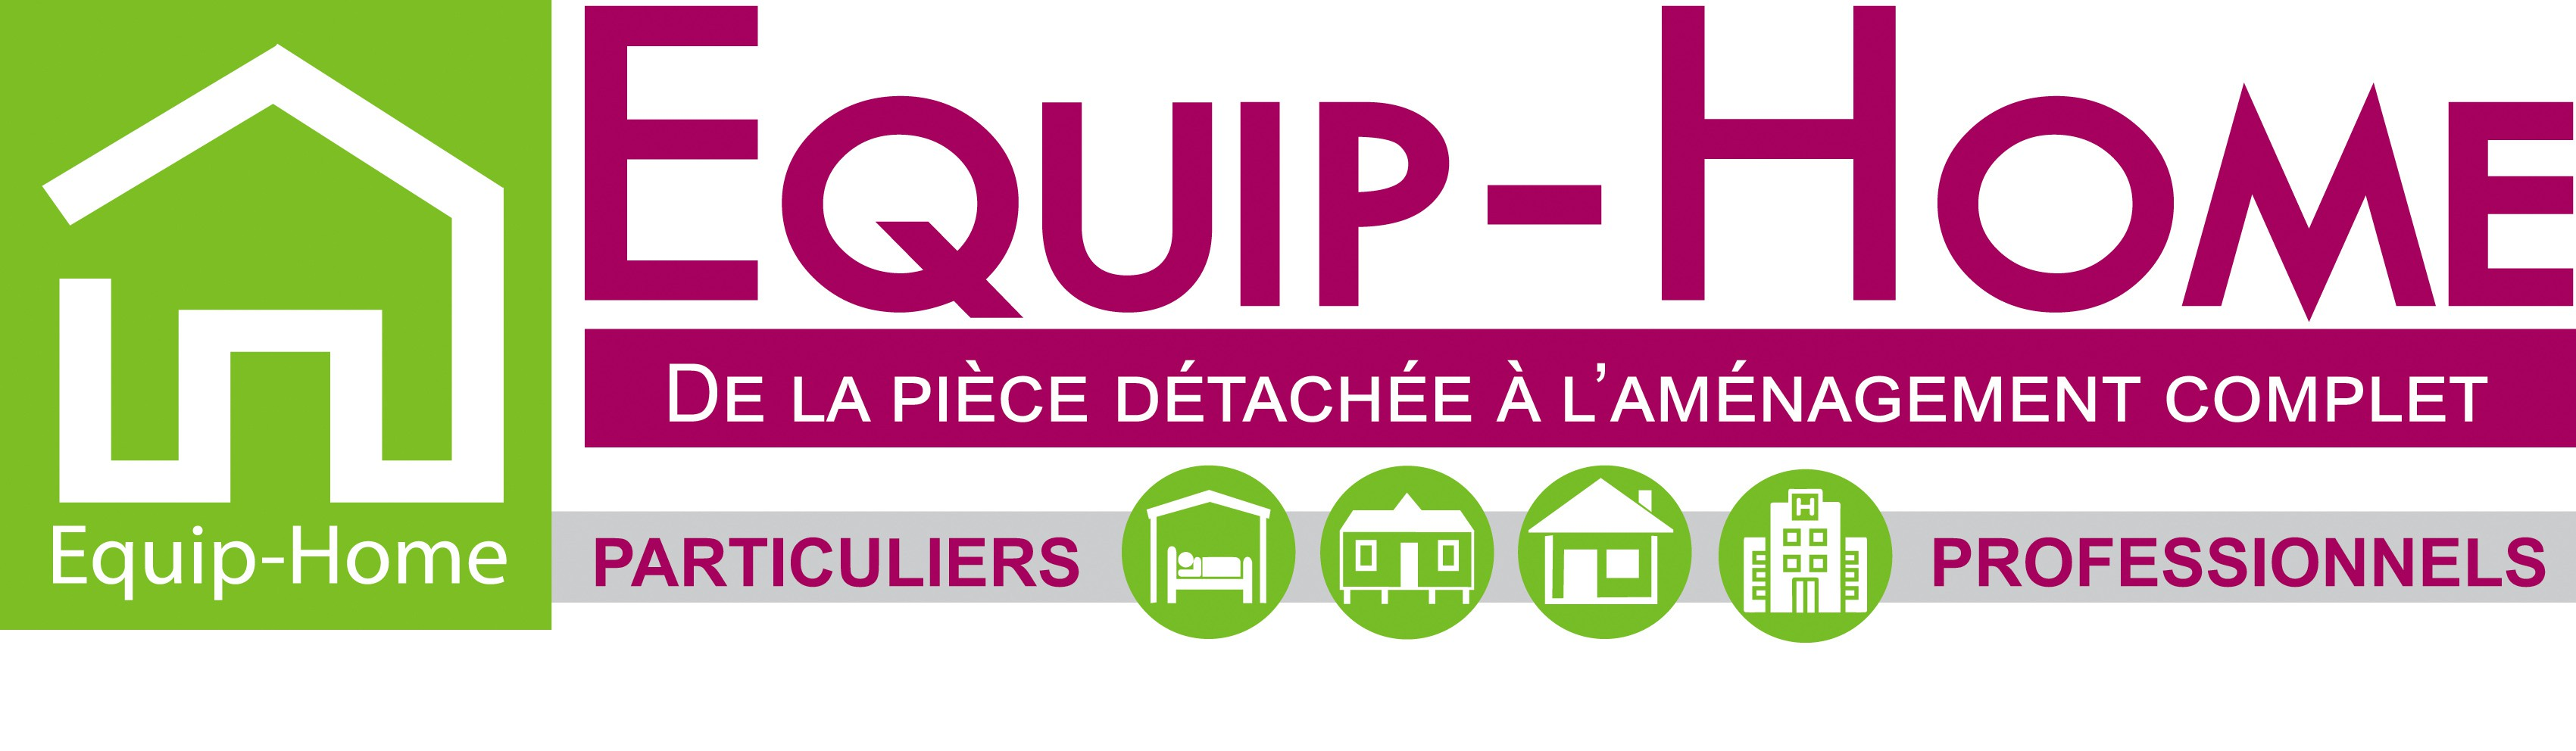 Equip-Home